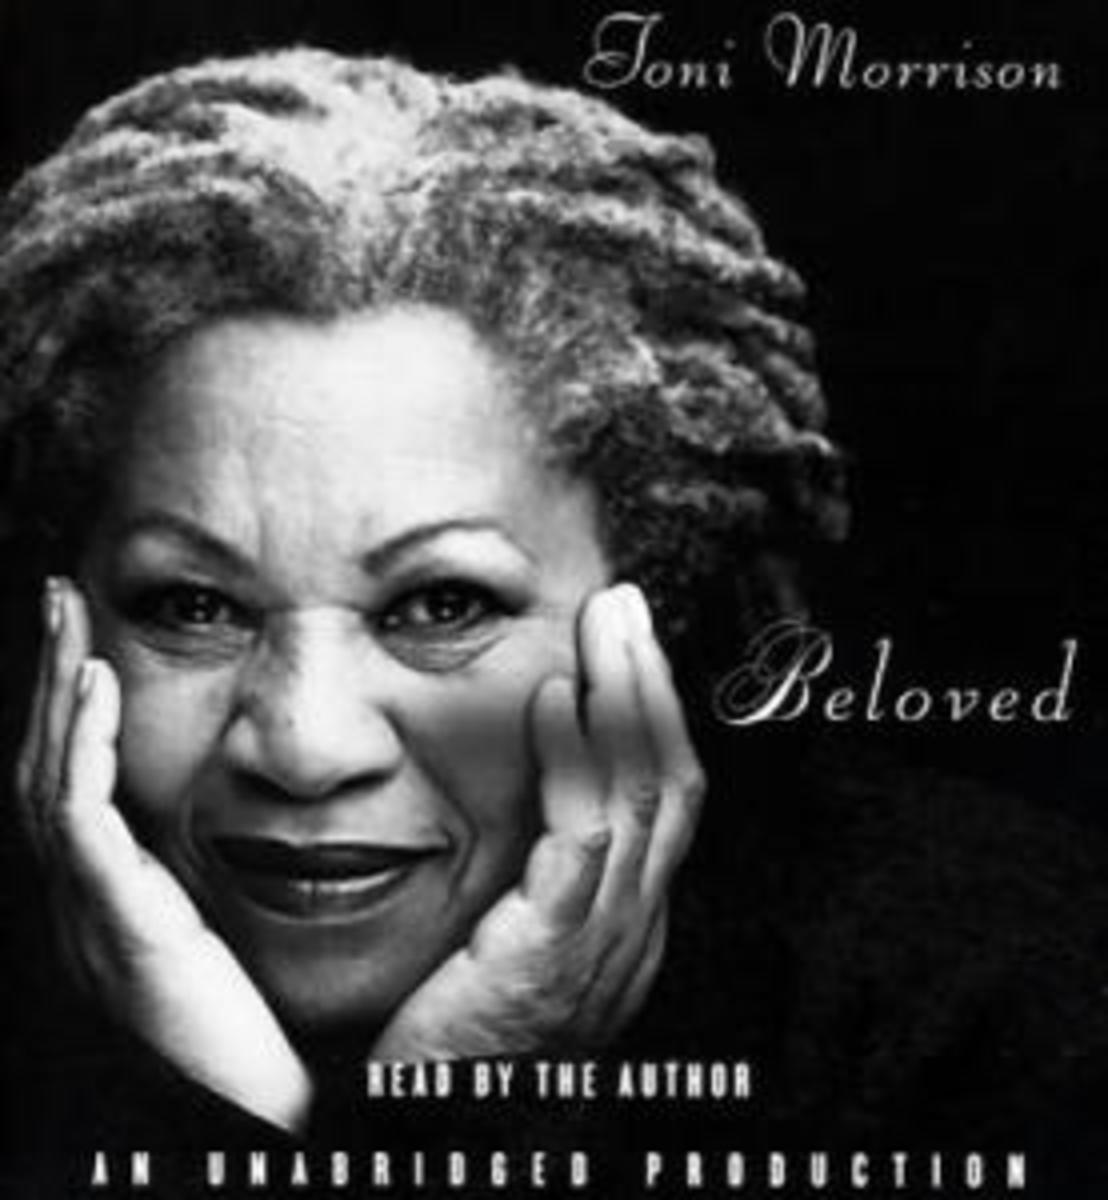 Beloved brought author Toni Morrison the Pulitzer Prize for fiction.